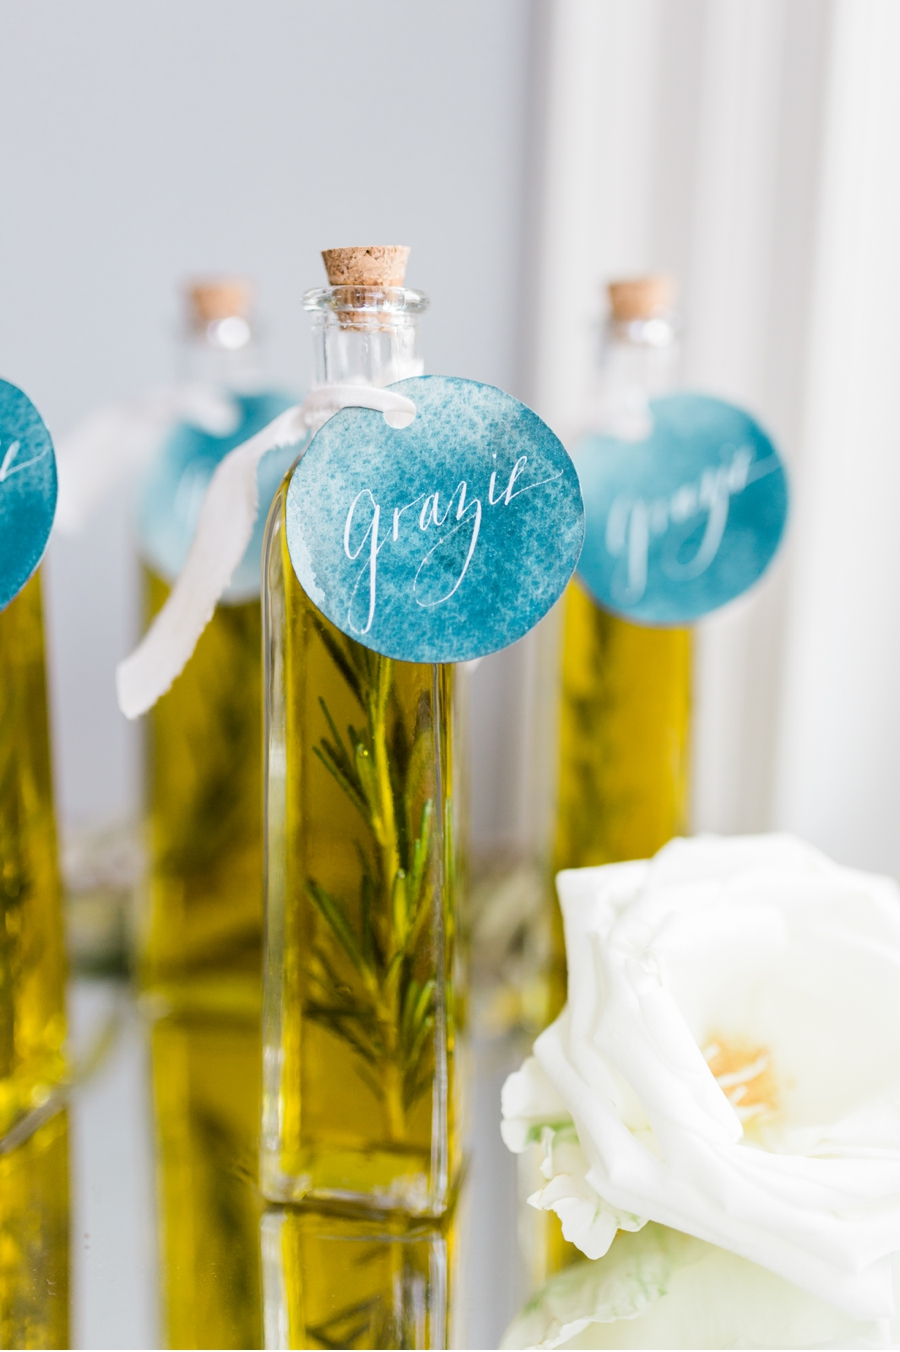 Olive-Oil-Guest-Favours